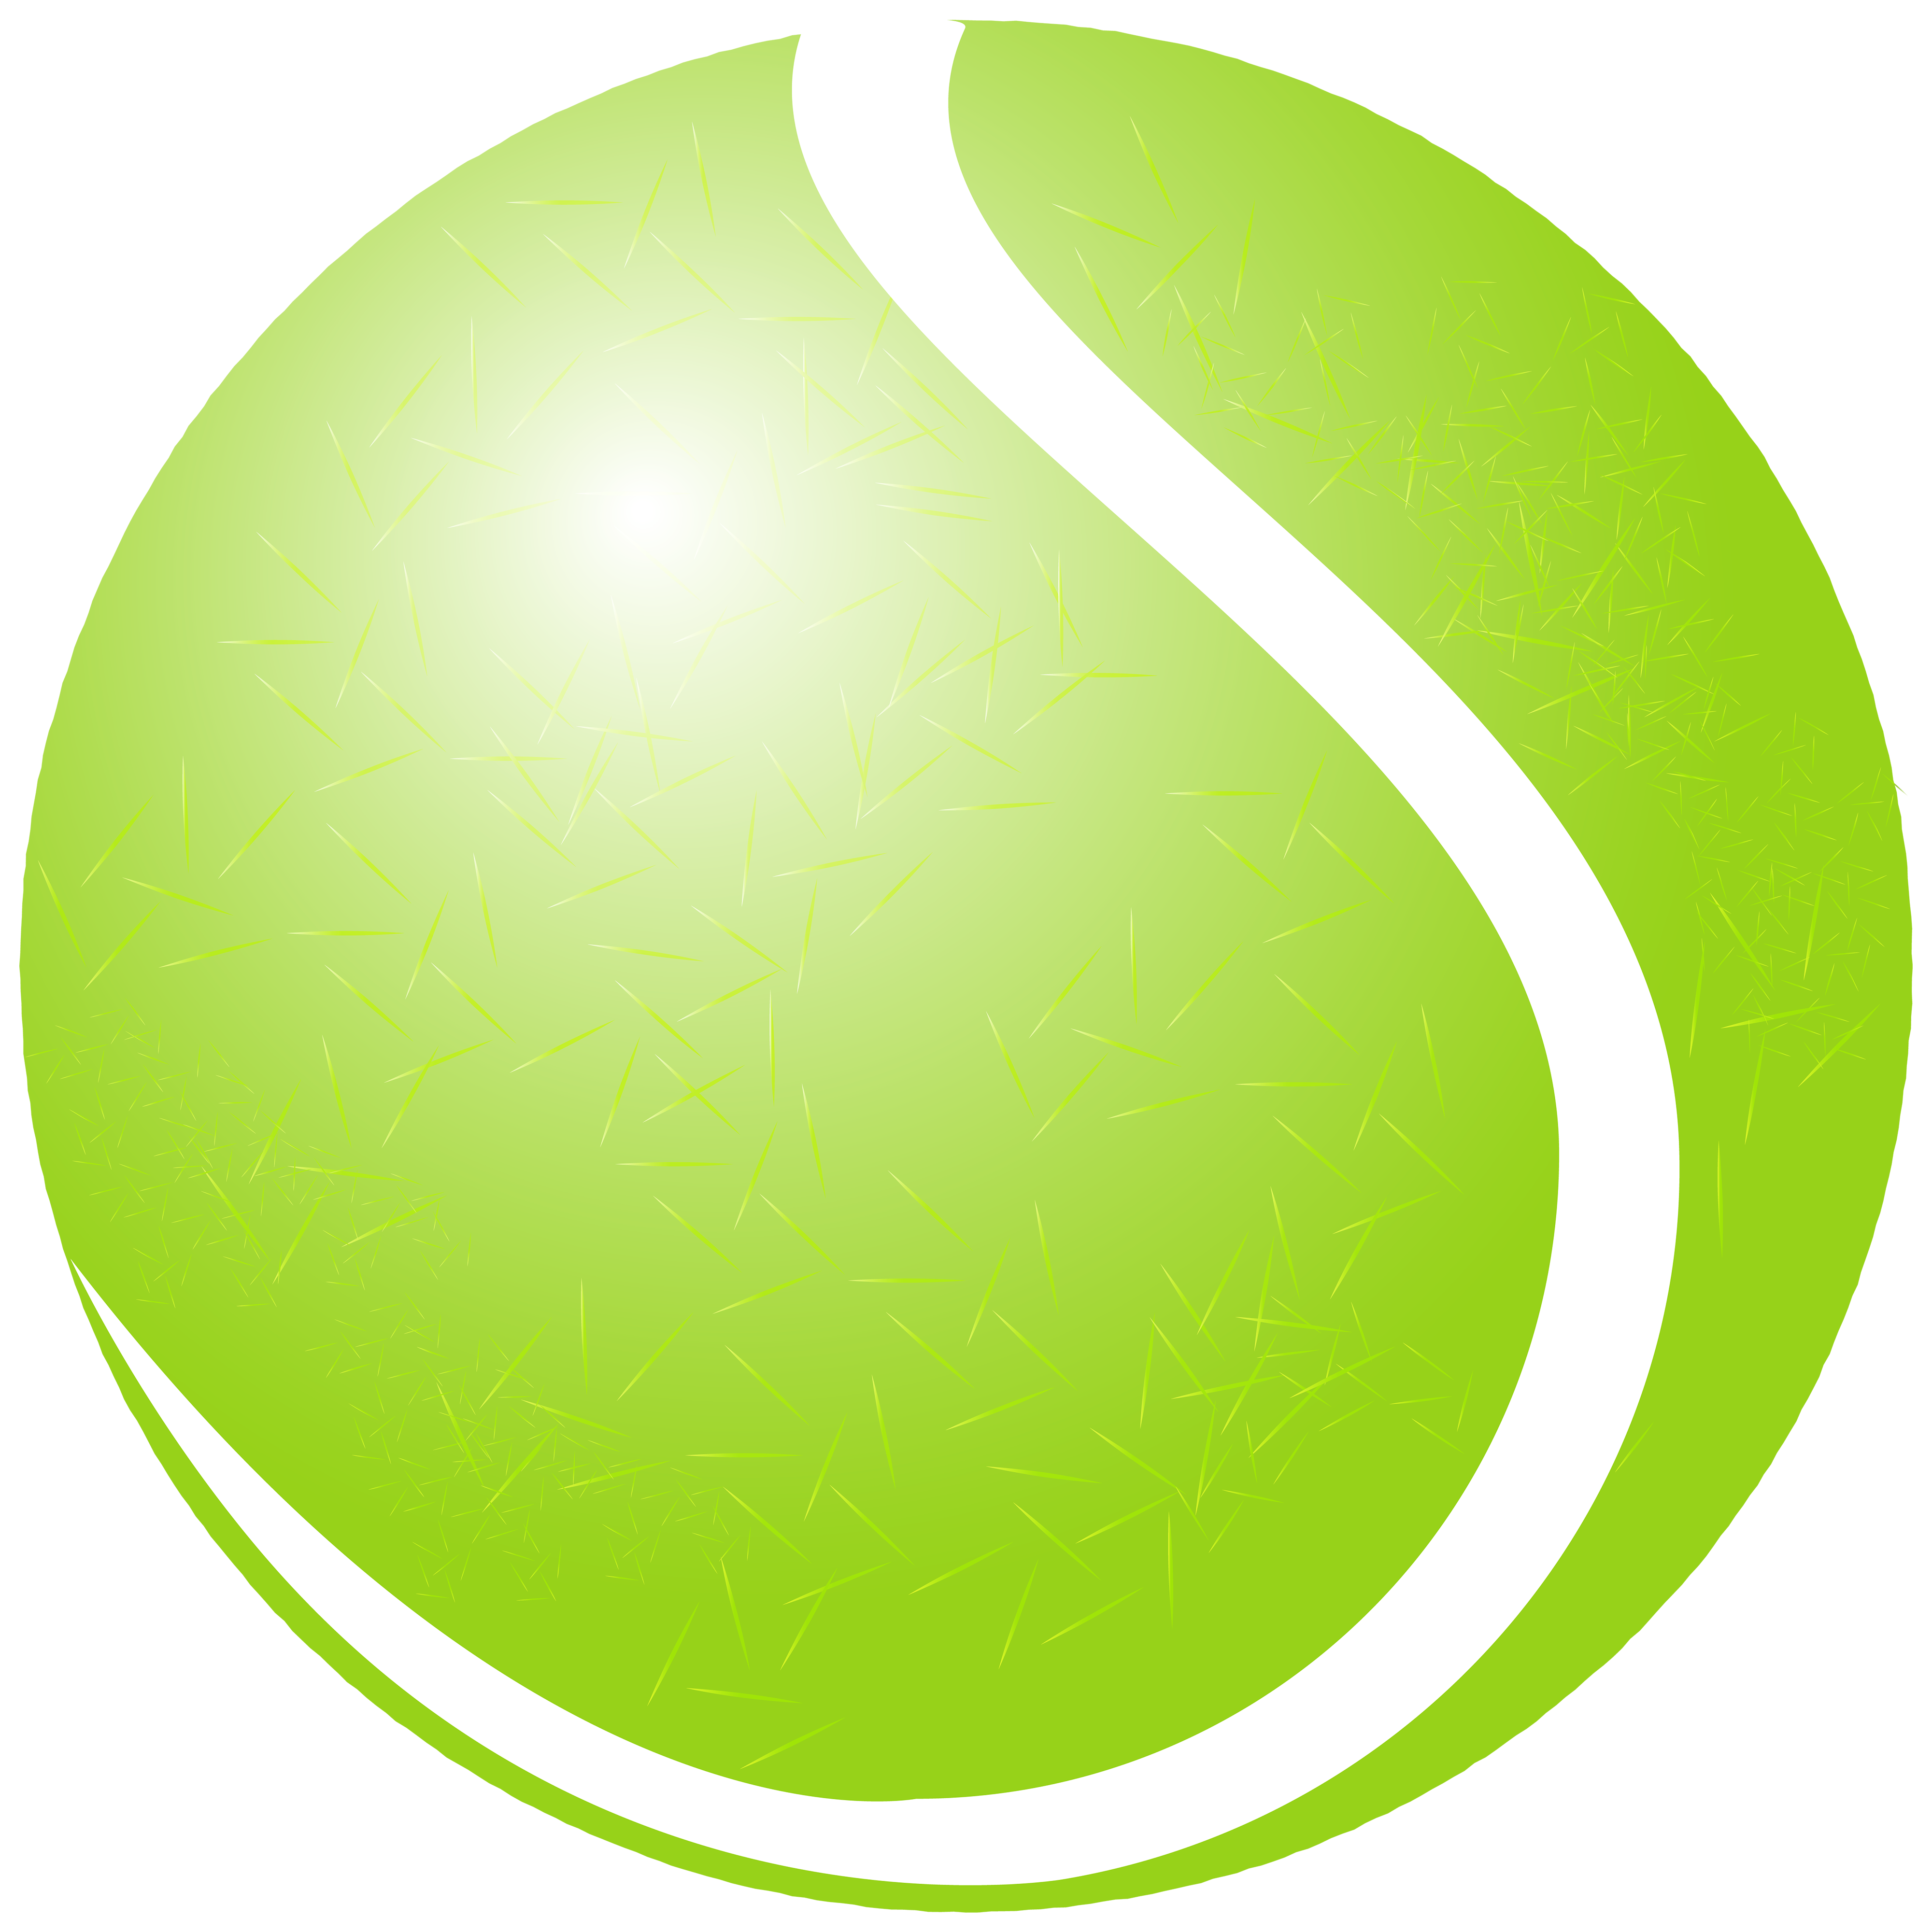 graphic black and white stock Png best web. Tennis ball clipart